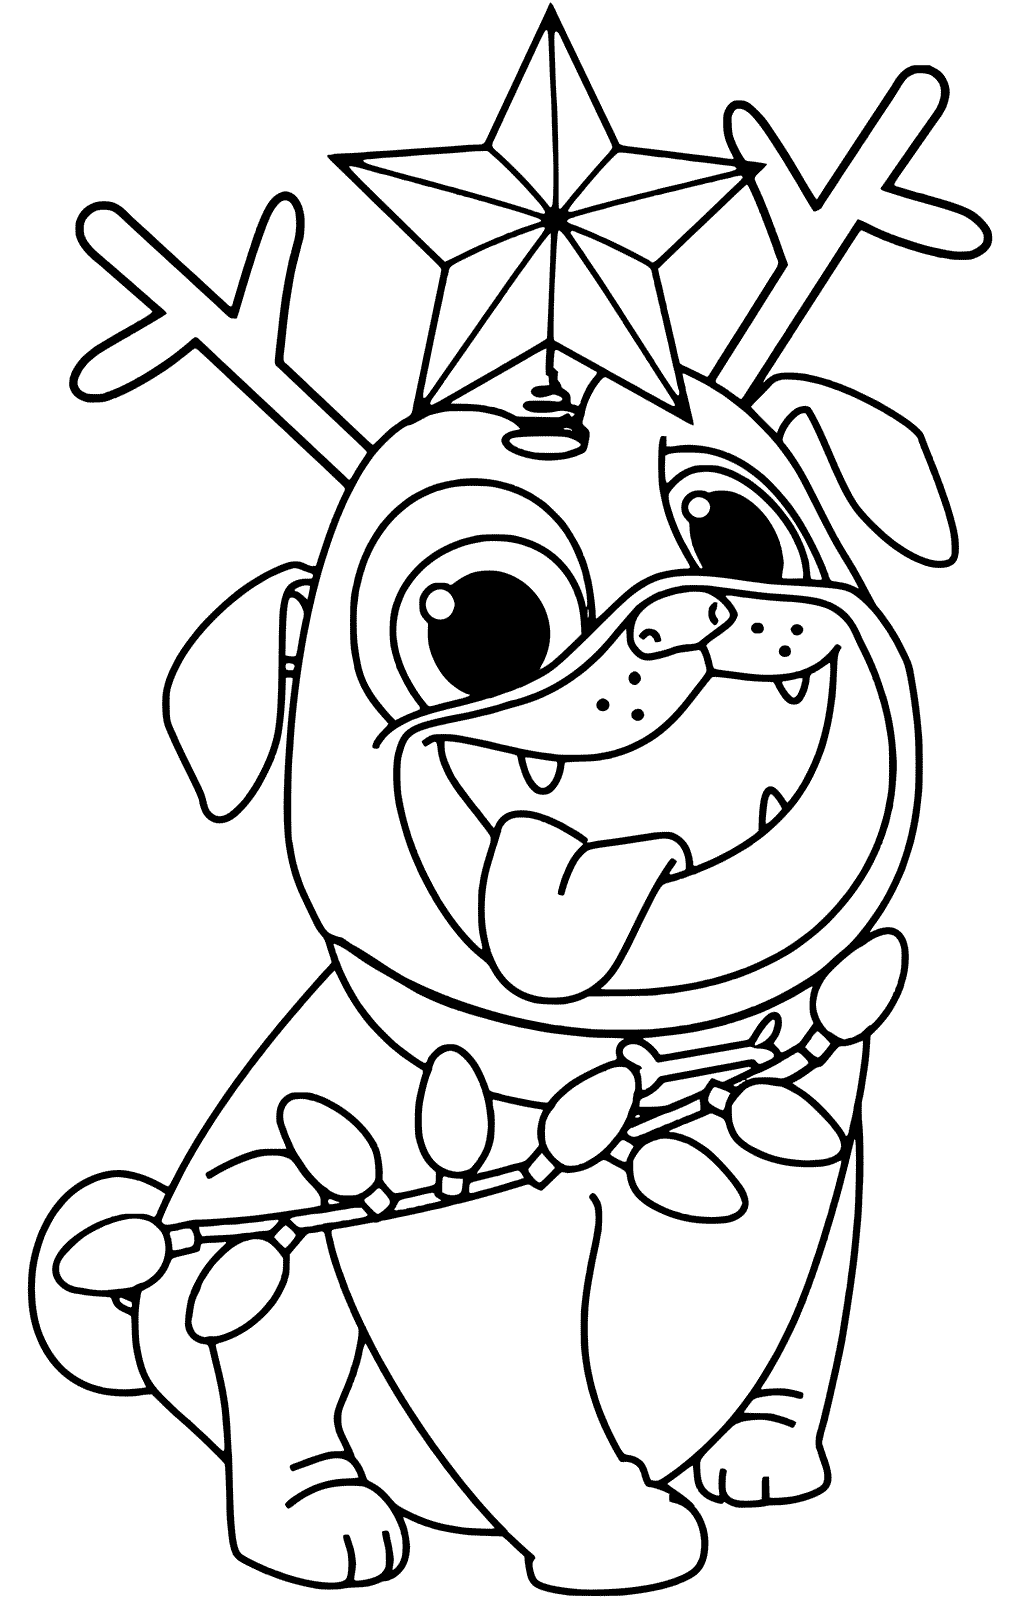 dog color sheets dog coloring lesson coloring pages for kids coloring color sheets dog